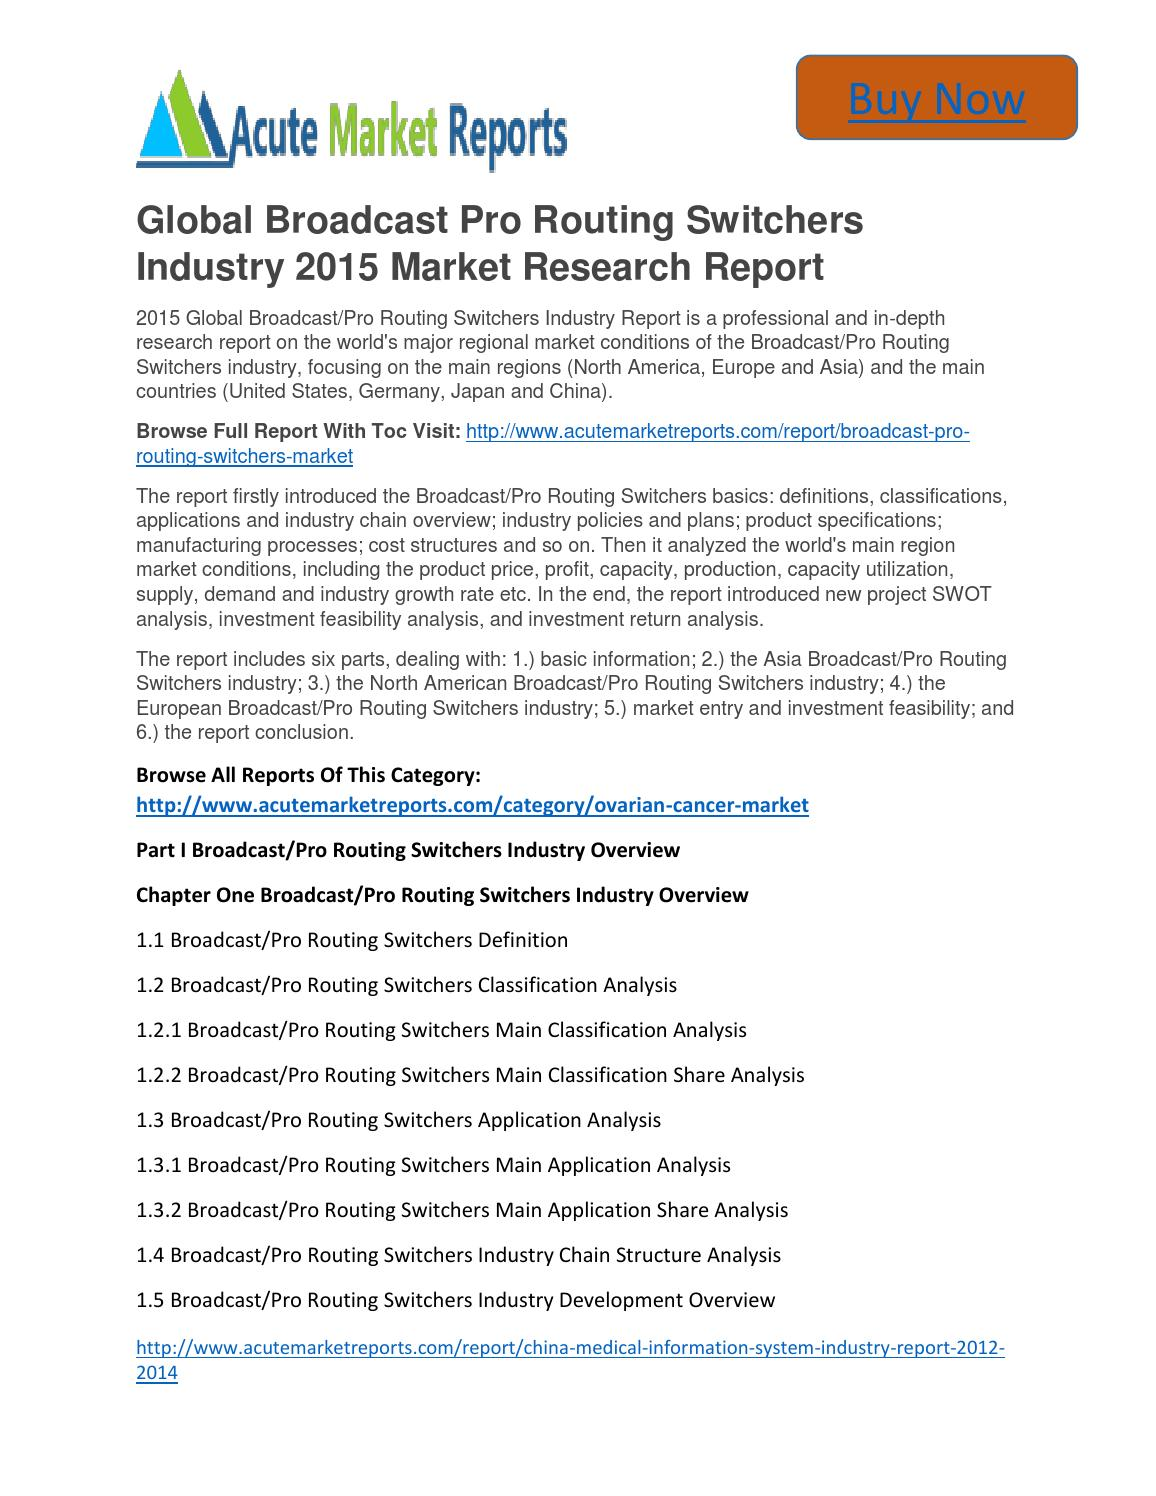 Global Broadcast Pro Routing Switchers Market Size, Analysis